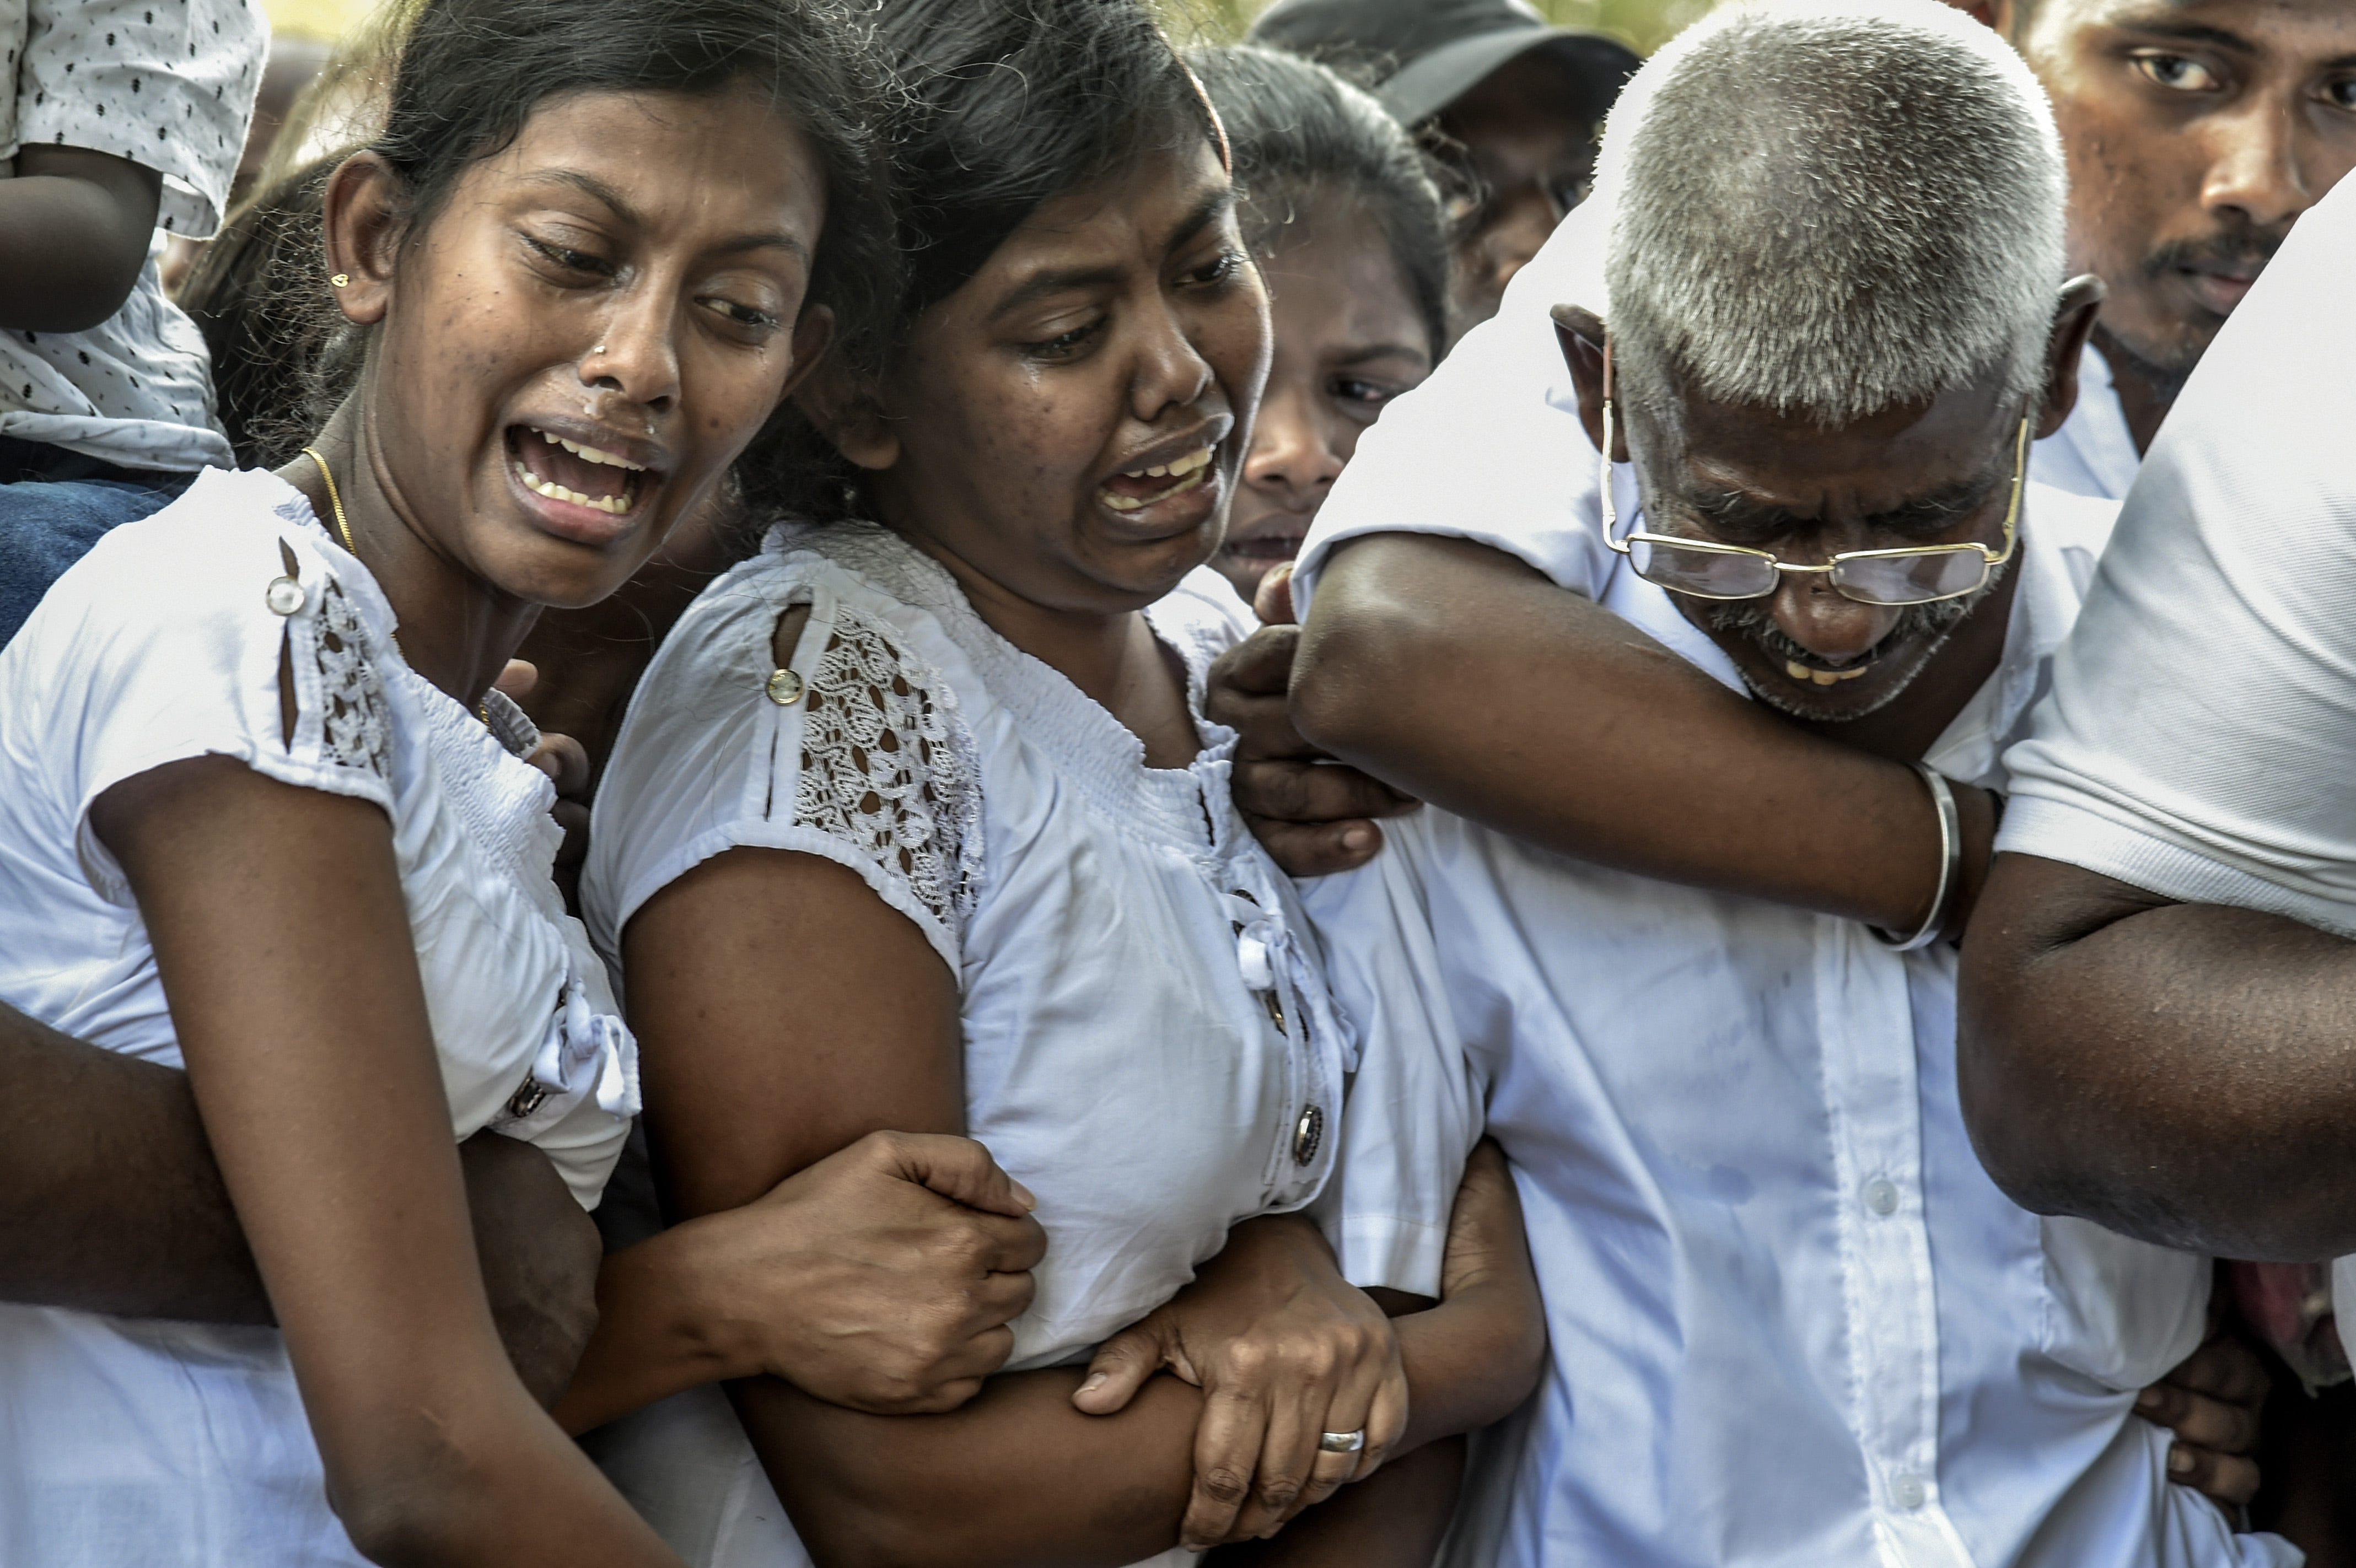 Relatives cry at the graveside during a funeral April 24 for a victim of the Easter Sunday bombings in Colombo, Sri Lanka.